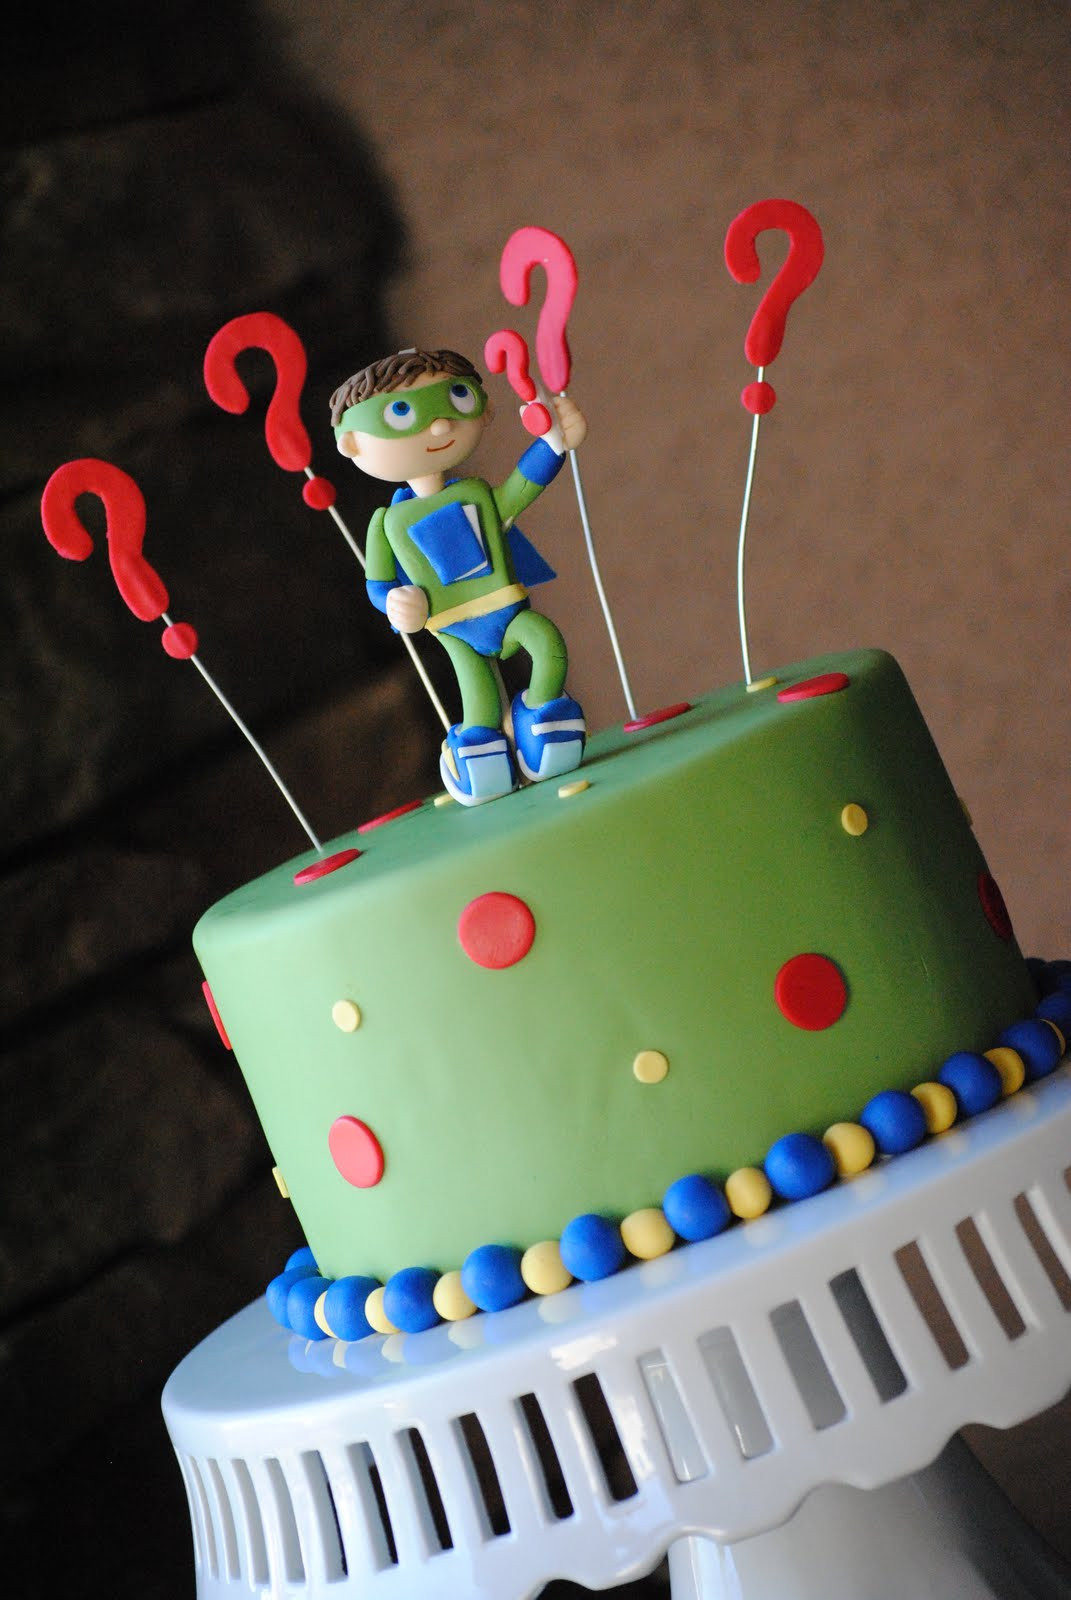 Best ideas about Super Why Birthday Cake . Save or Pin Super Why My FaVoriTe CaKe PlaCe Now.